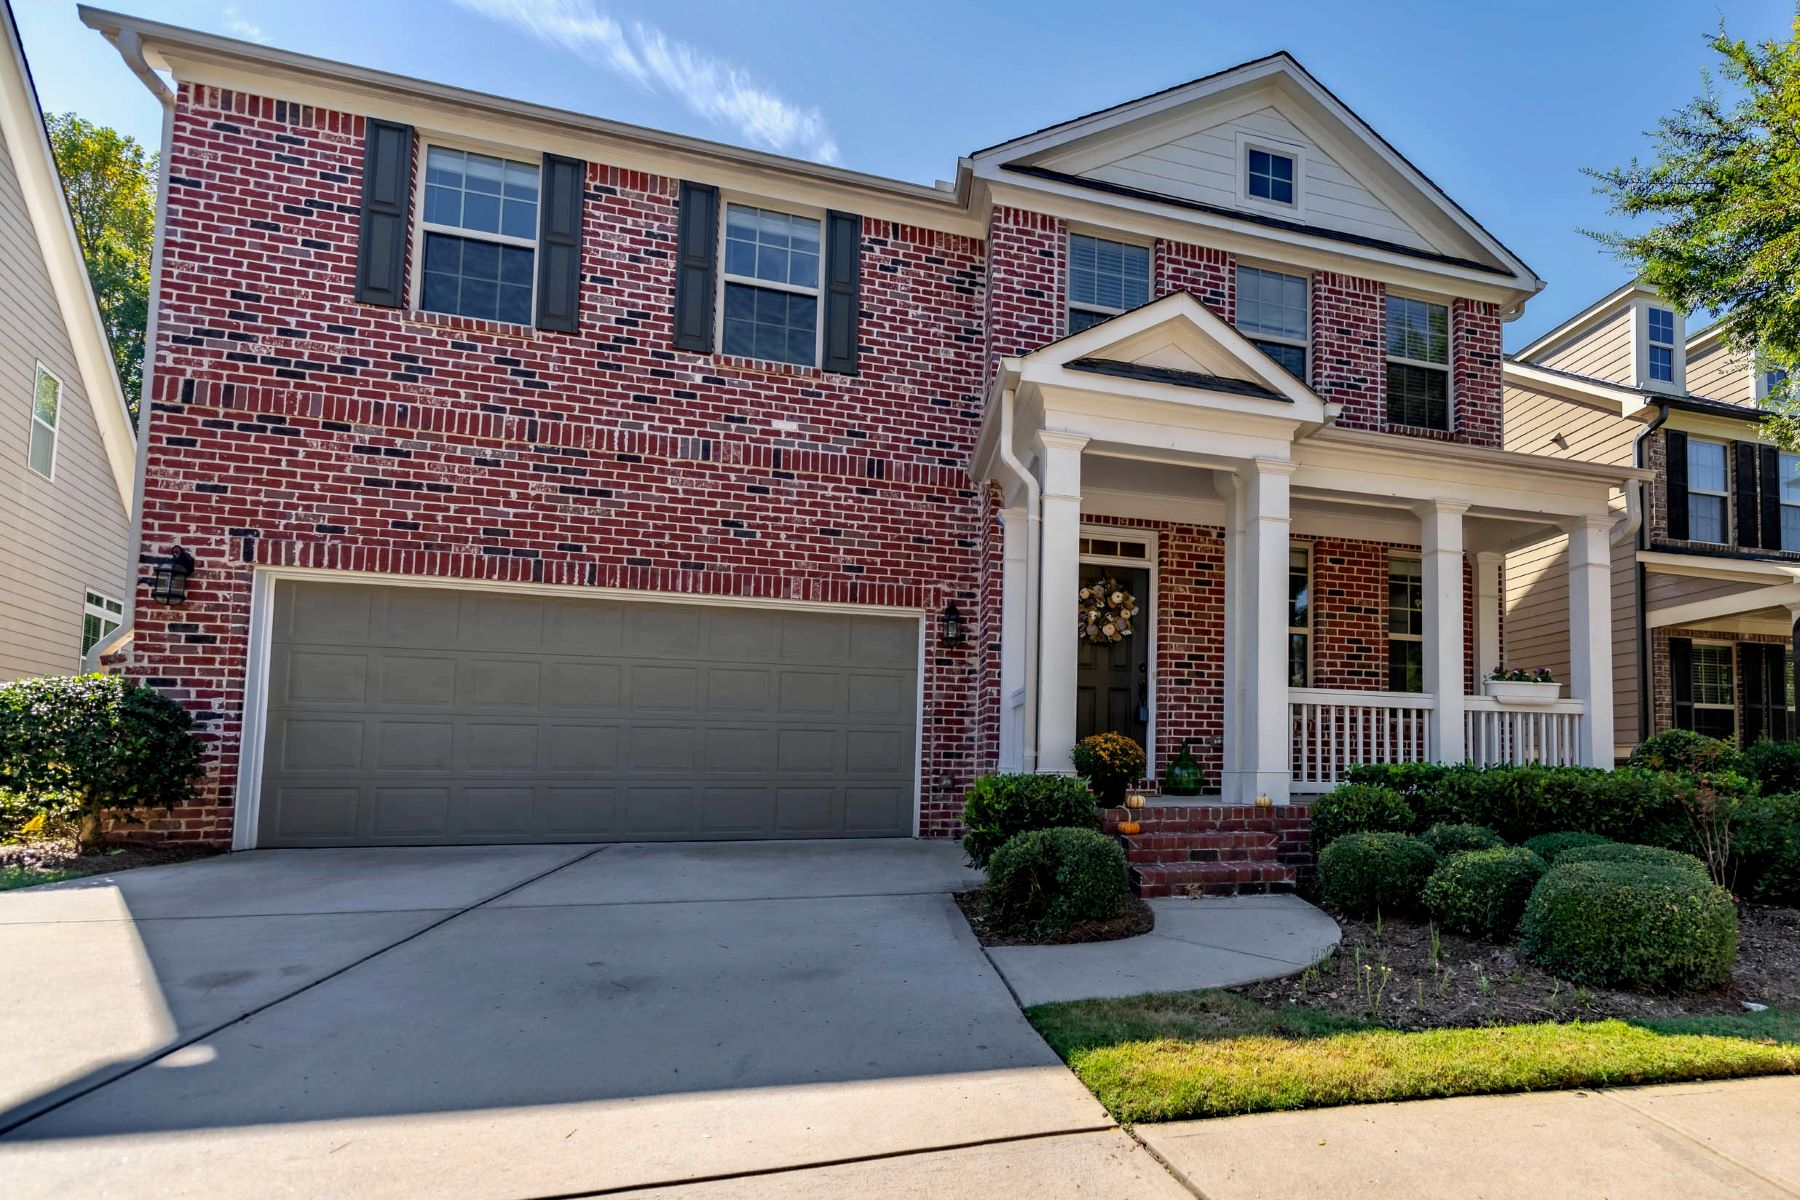 Property のために 売買 アット Traditional Home In Woodbridge Crossing 4530 Wilkerson Place SE, Smyrna, ジョージア 30082 アメリカ